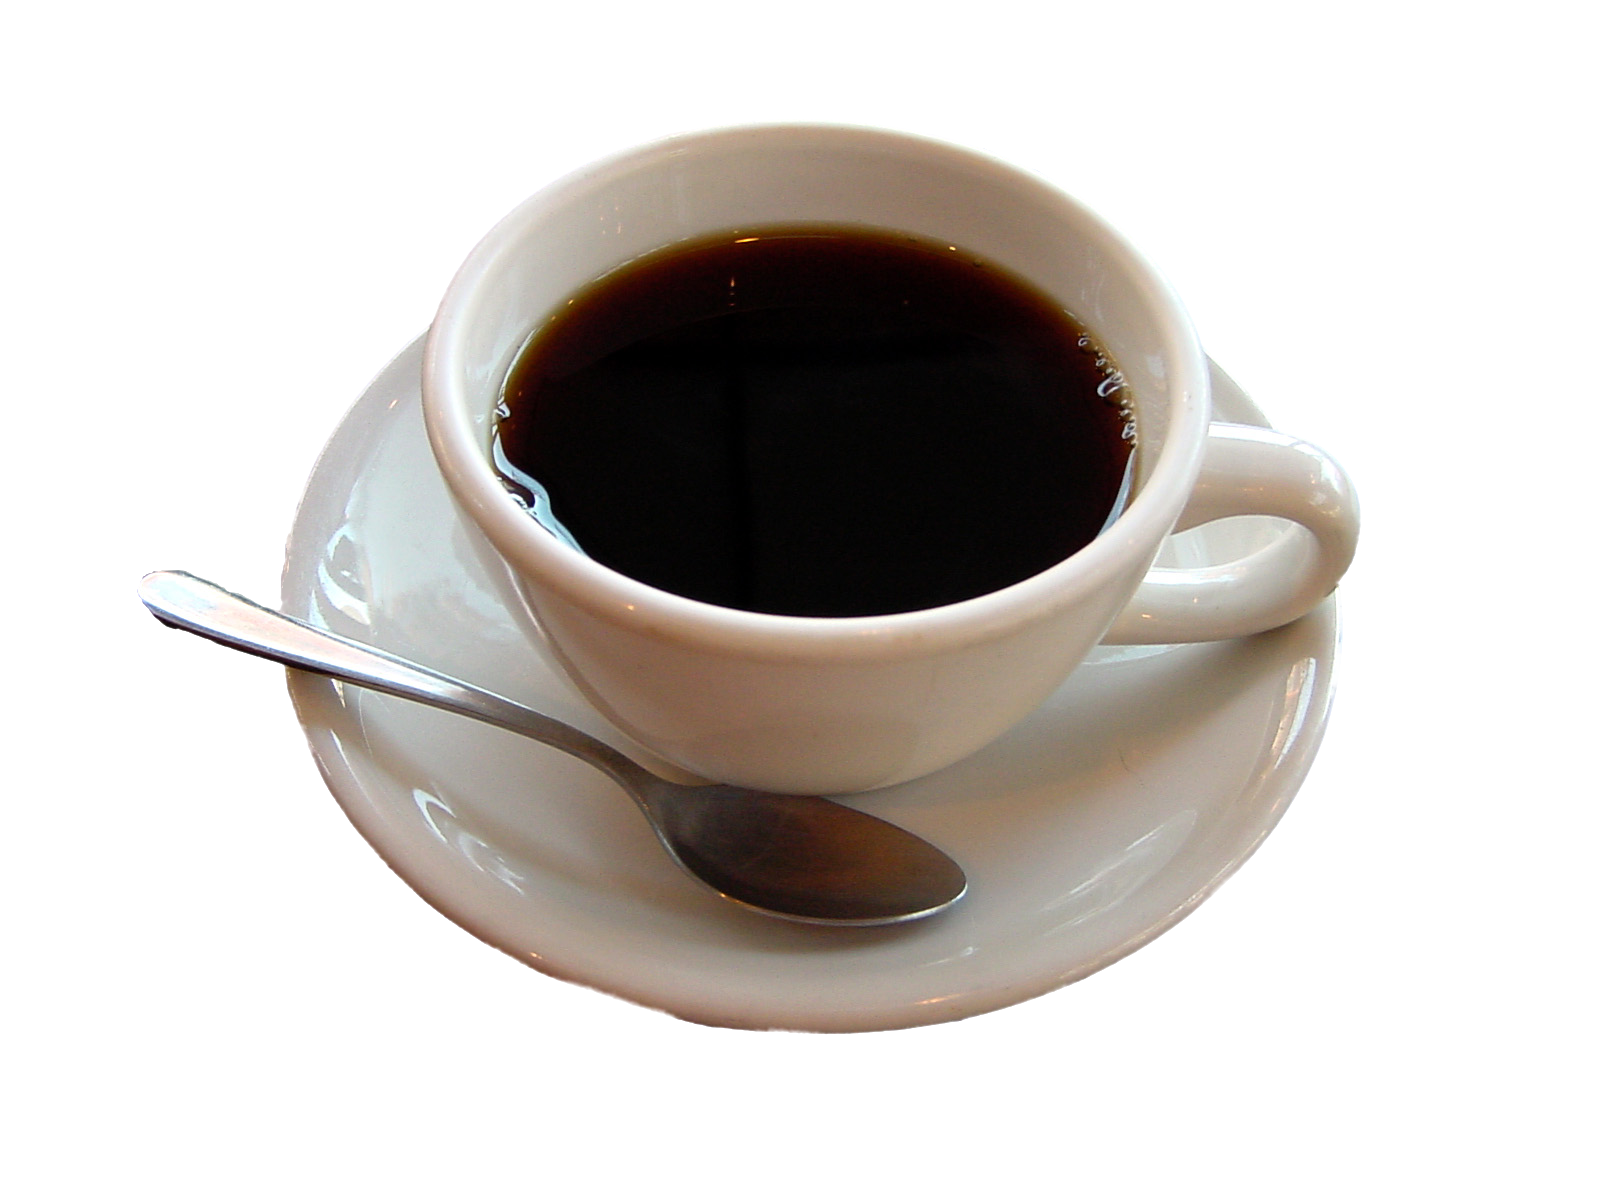 uploads mug coffee mug coffee PNG16831 43